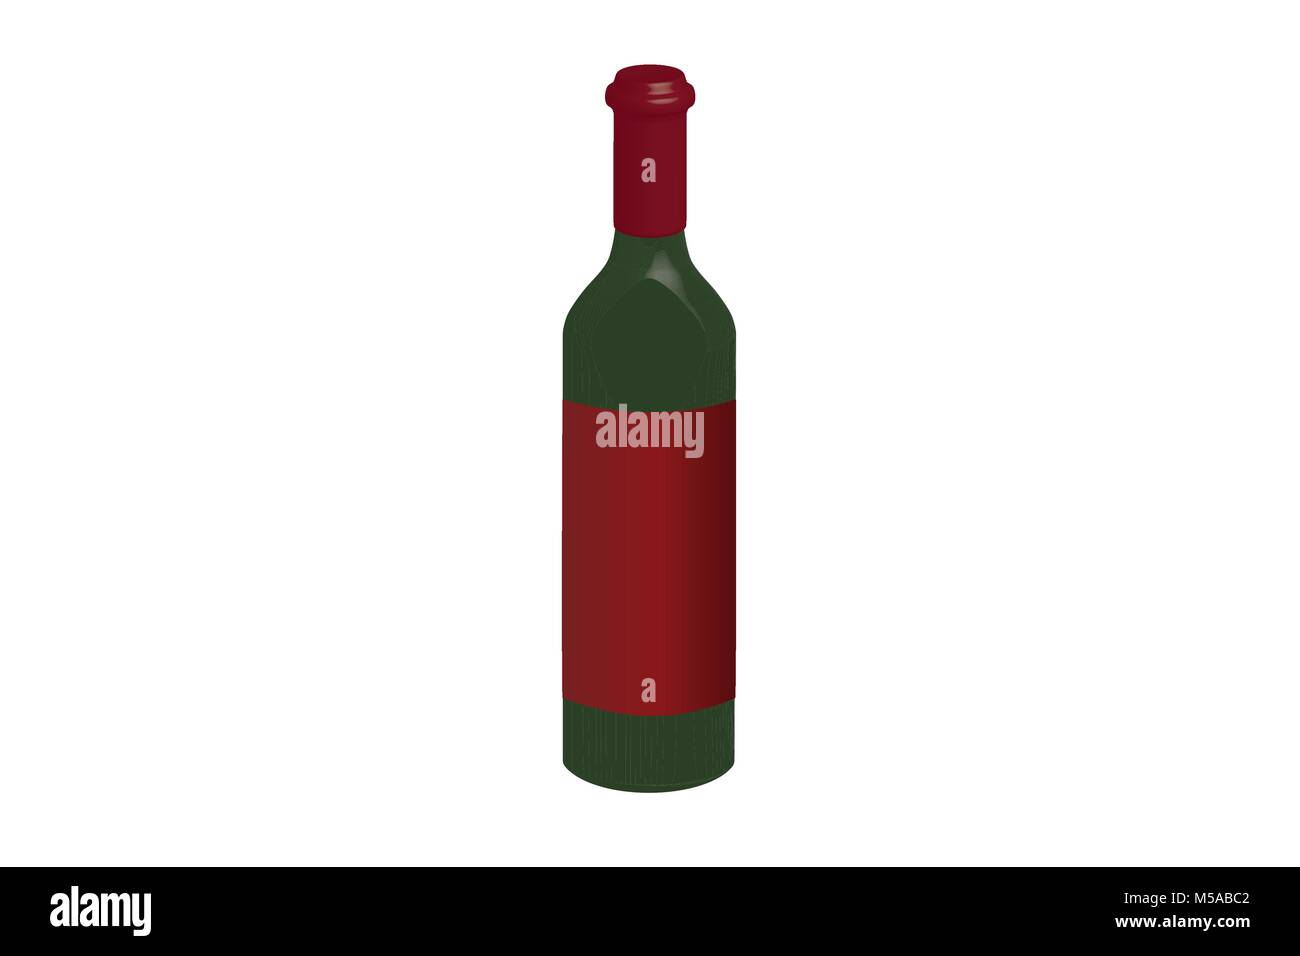 Illustration of bottle of red vine with red label, vector of green glass bottle with trademark-neutral label/ unopened - Stock Image